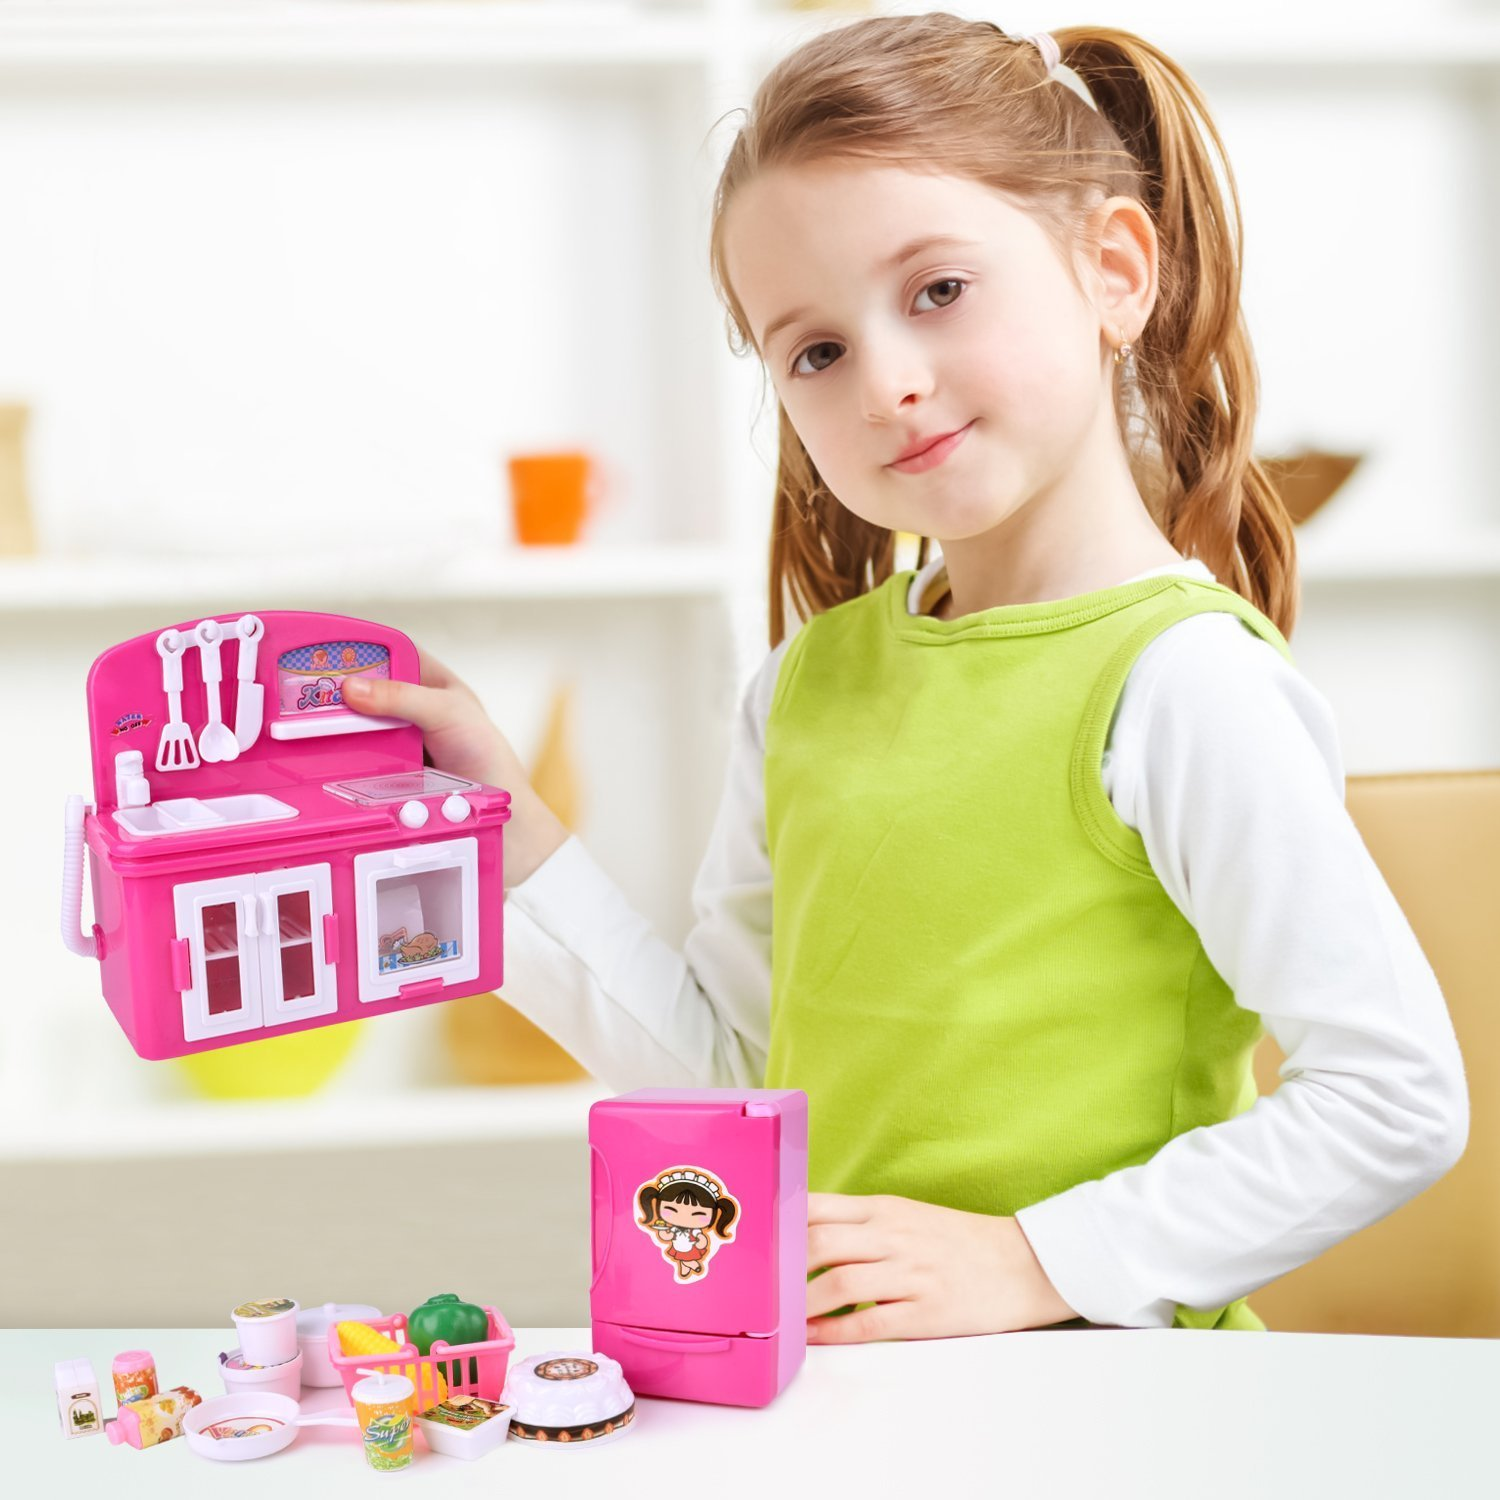 19 PCs Kitchen Appliance Toys with Kitchen, Refrigerator, Pot and Tableware, Pretend Play Set for Kids, Play Kitchen Appliance by FUN LITTLE TOYS (Image #3)